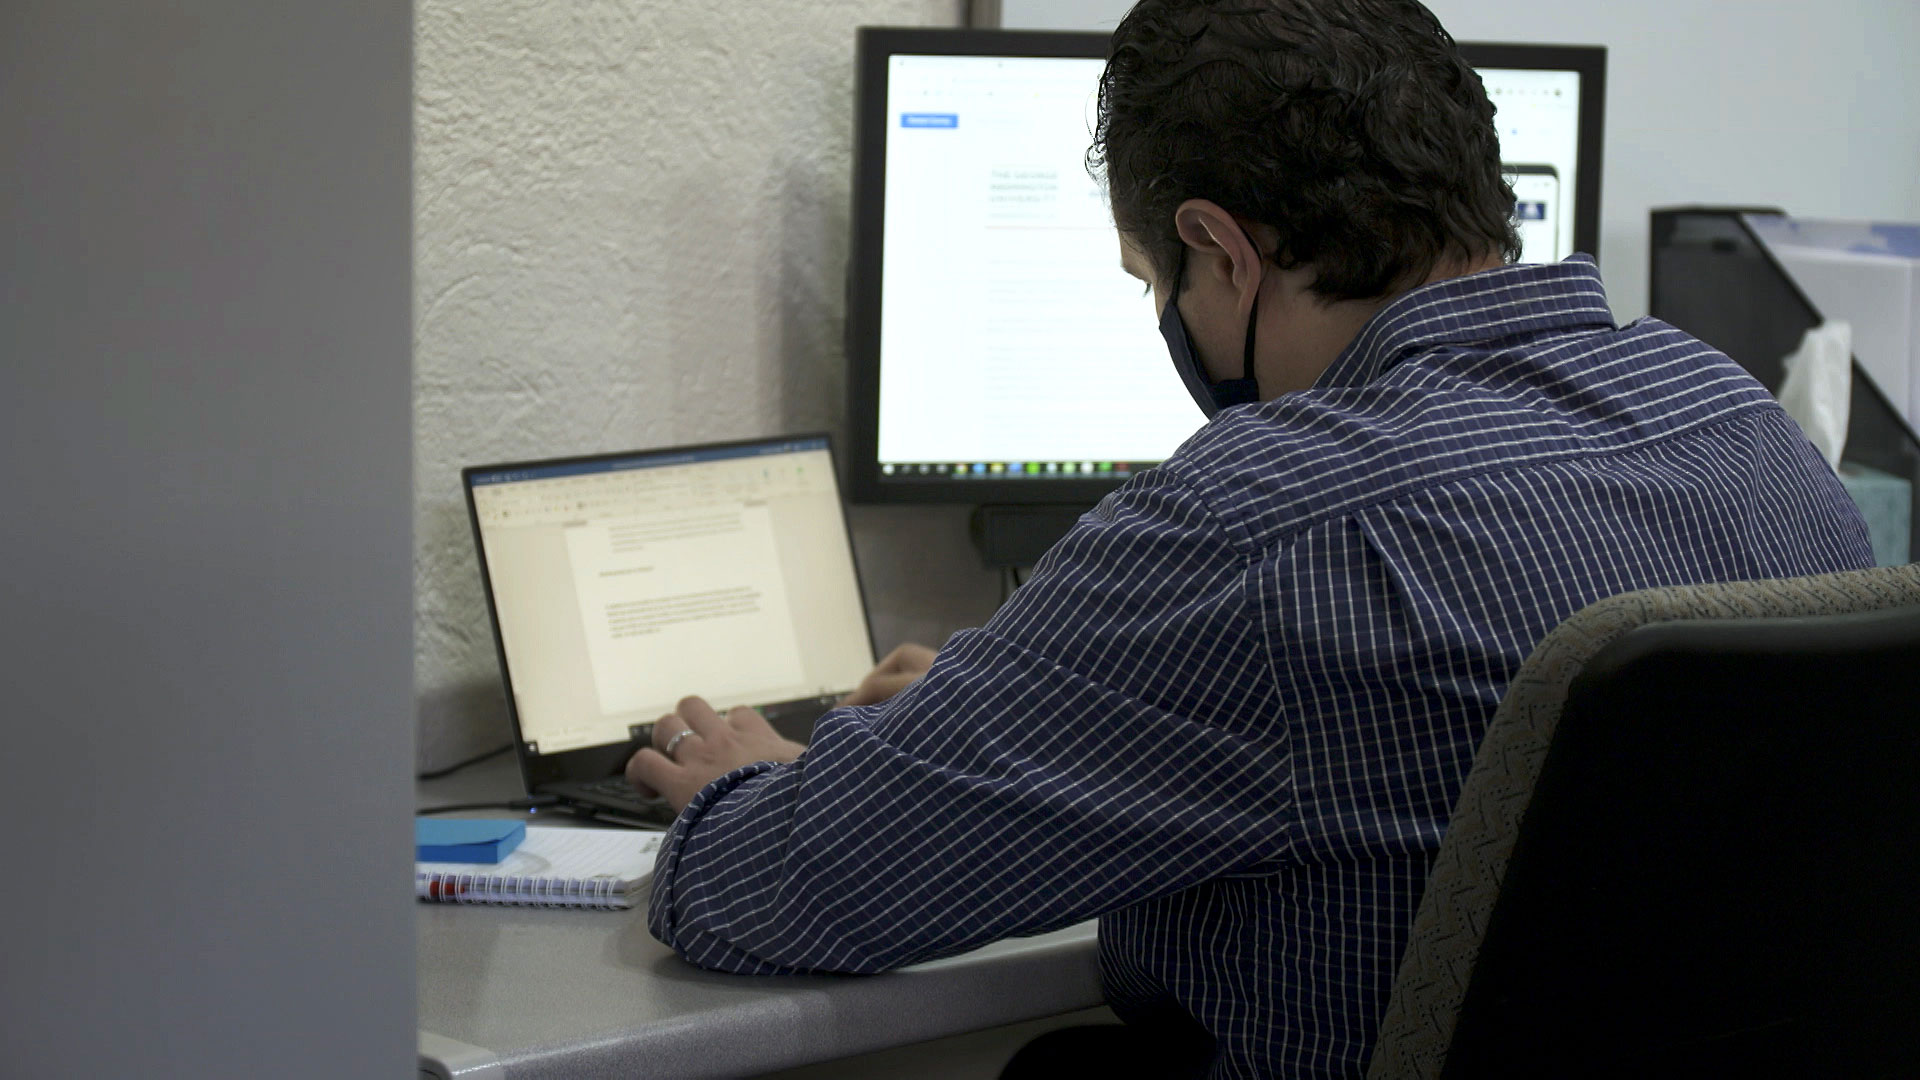 Santiago Castiello-Gutiérrez works on his computer at the University of Arizona on July 28, 2020. Castiello-Gutiérrez is an international student working toward his Ph.D. in higher education.